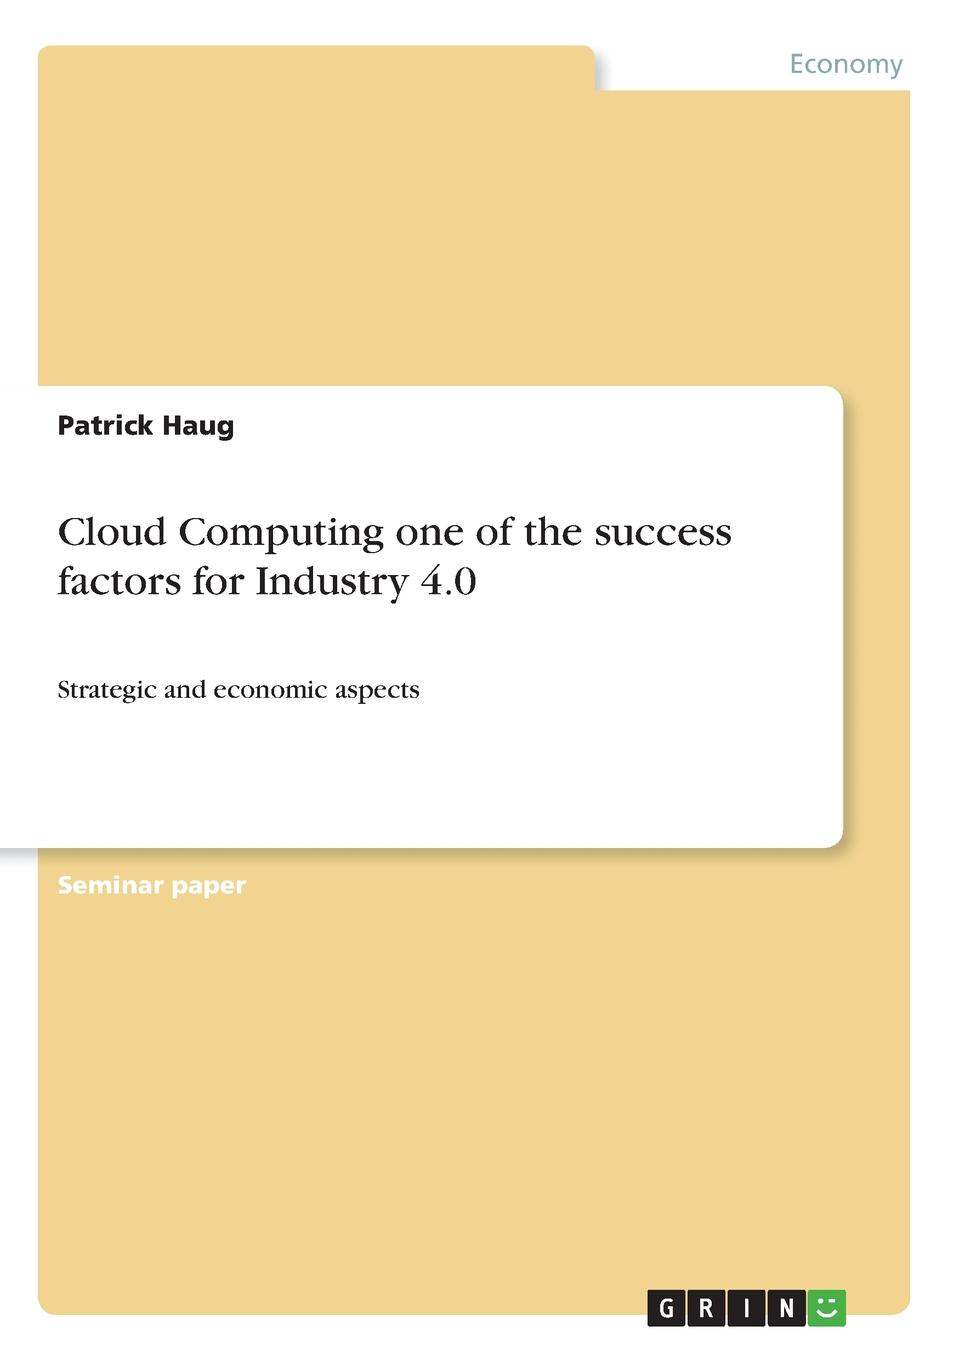 Patrick Haug Cloud Computing one of the success factors for Industry 4.0 uv spot printing on single side of paper business cards the item is only for uv spot fee don t include the cost of paper